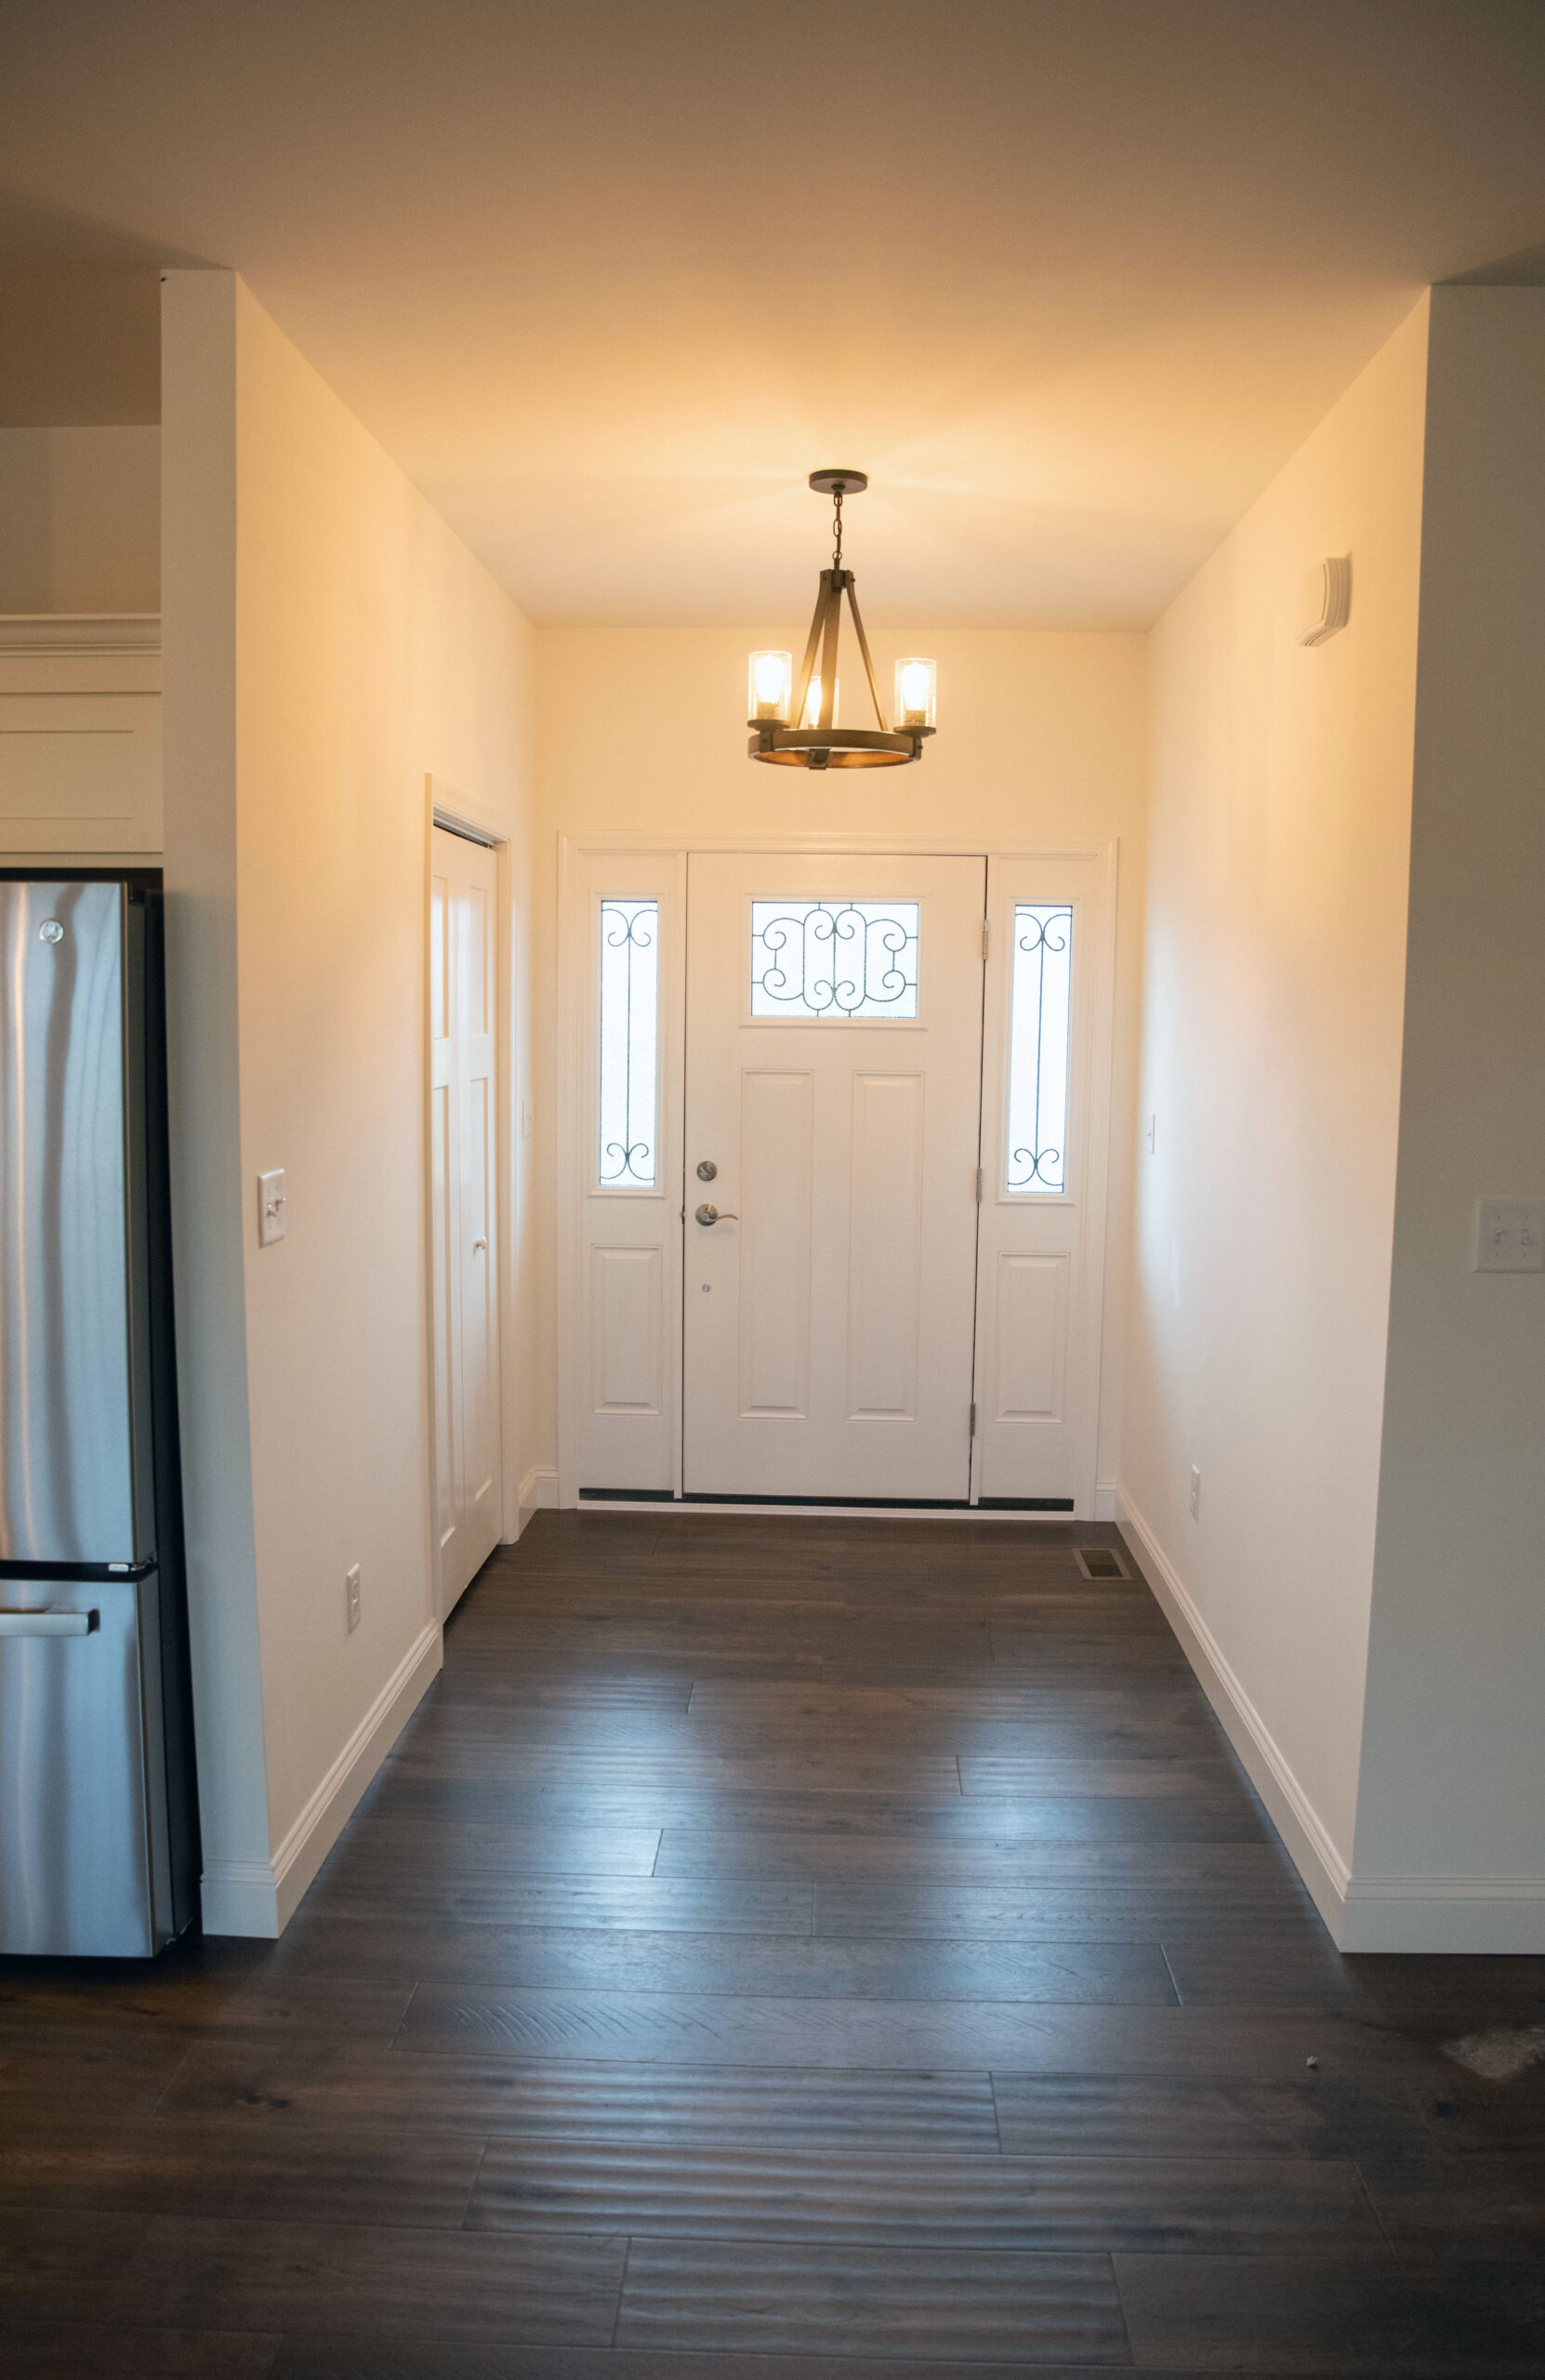 The foyer with an extra wide entry way with hardwood flooring, a chandelier and white walls